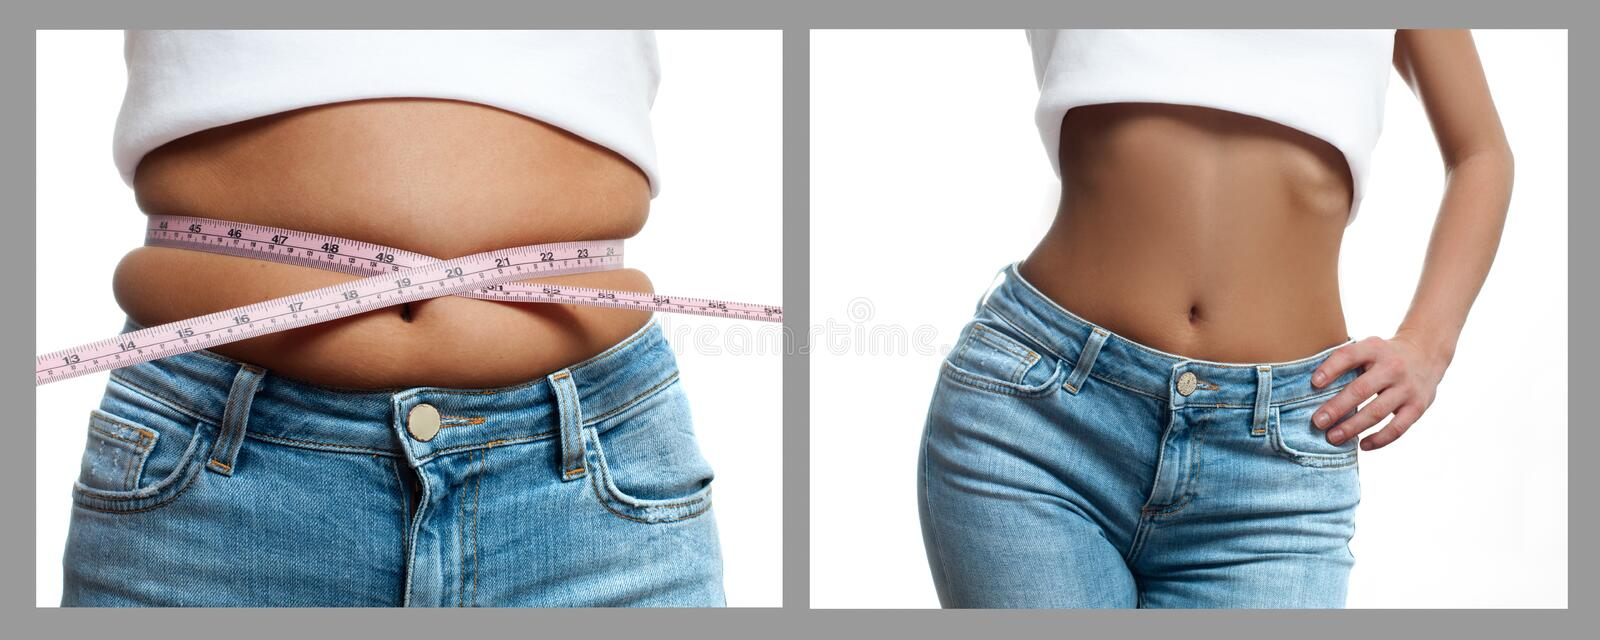 Woman`s body before and after weight loss. Diet concept royalty free stock photography